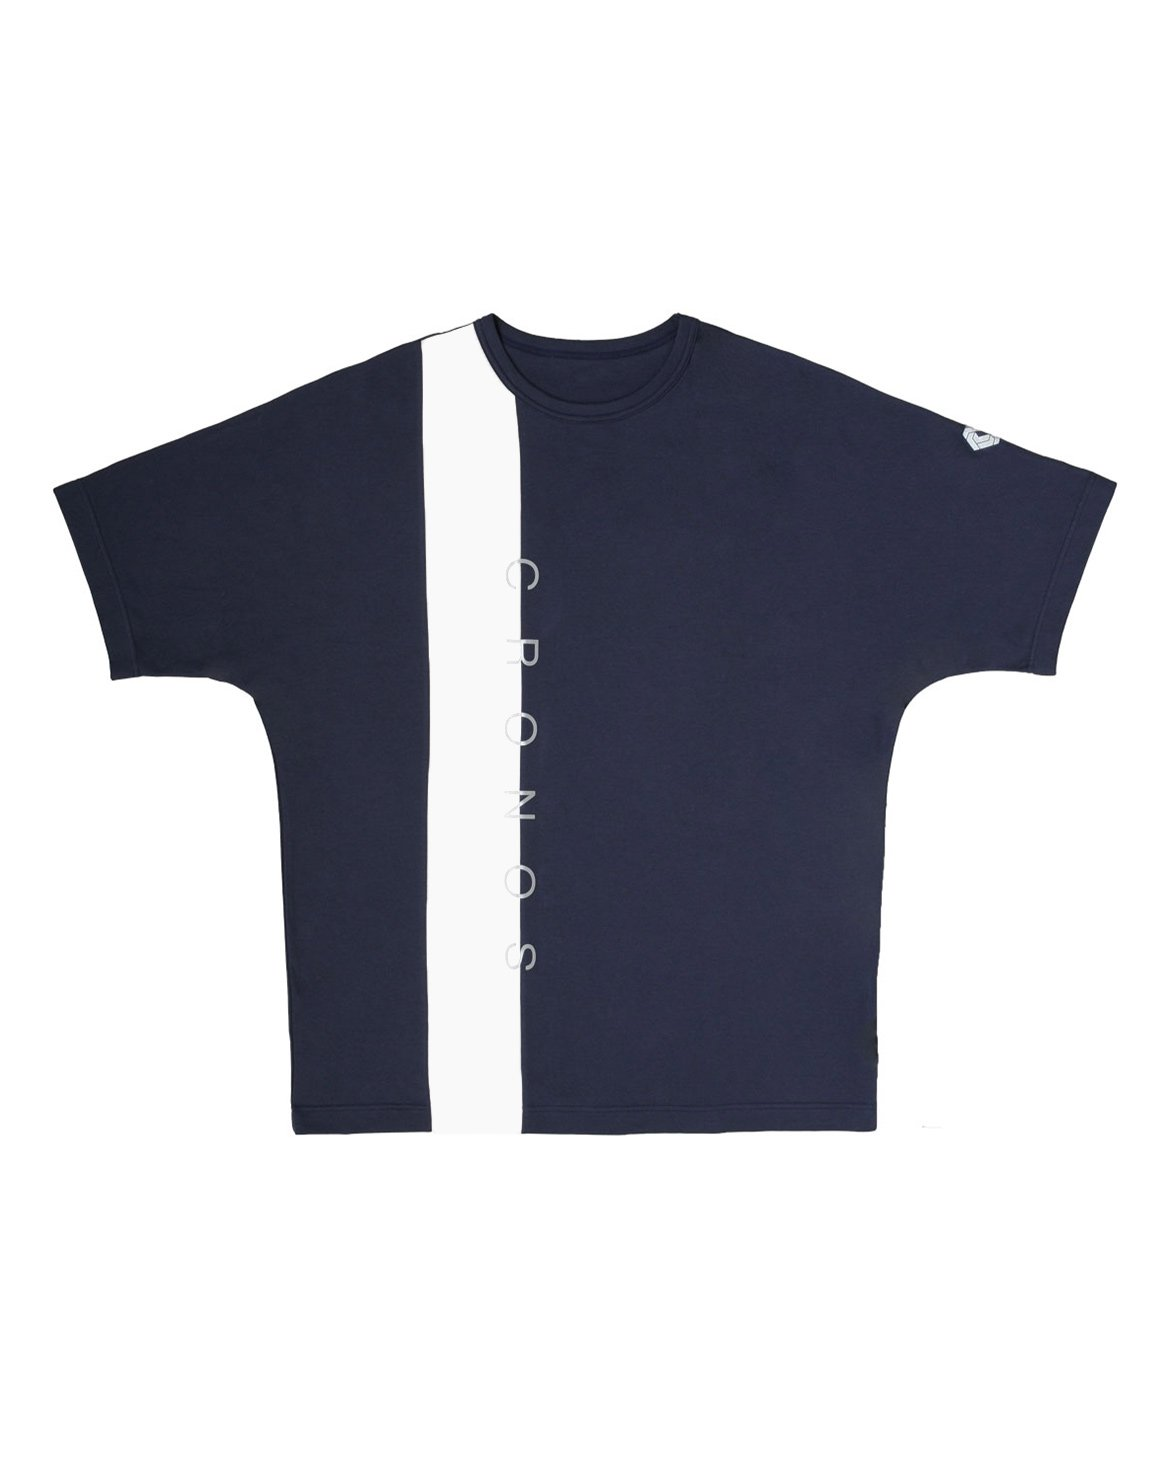 CRONOS VERTICAL LINE OVER SIZE T-SHIRTS【NAVY】